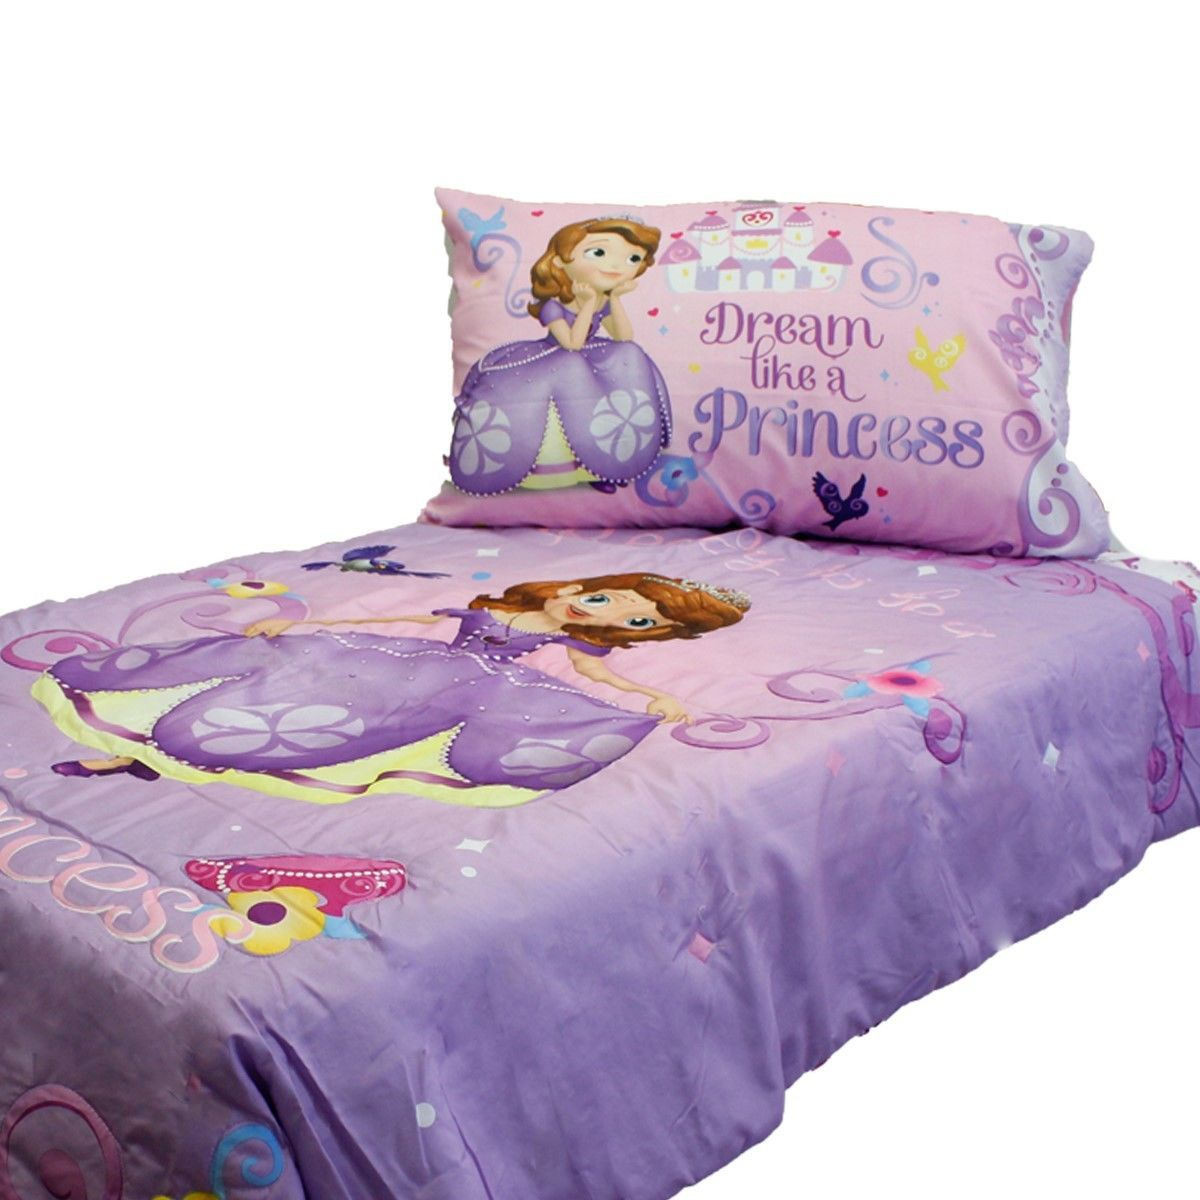 Disney Princess Toddler Bed Comforter